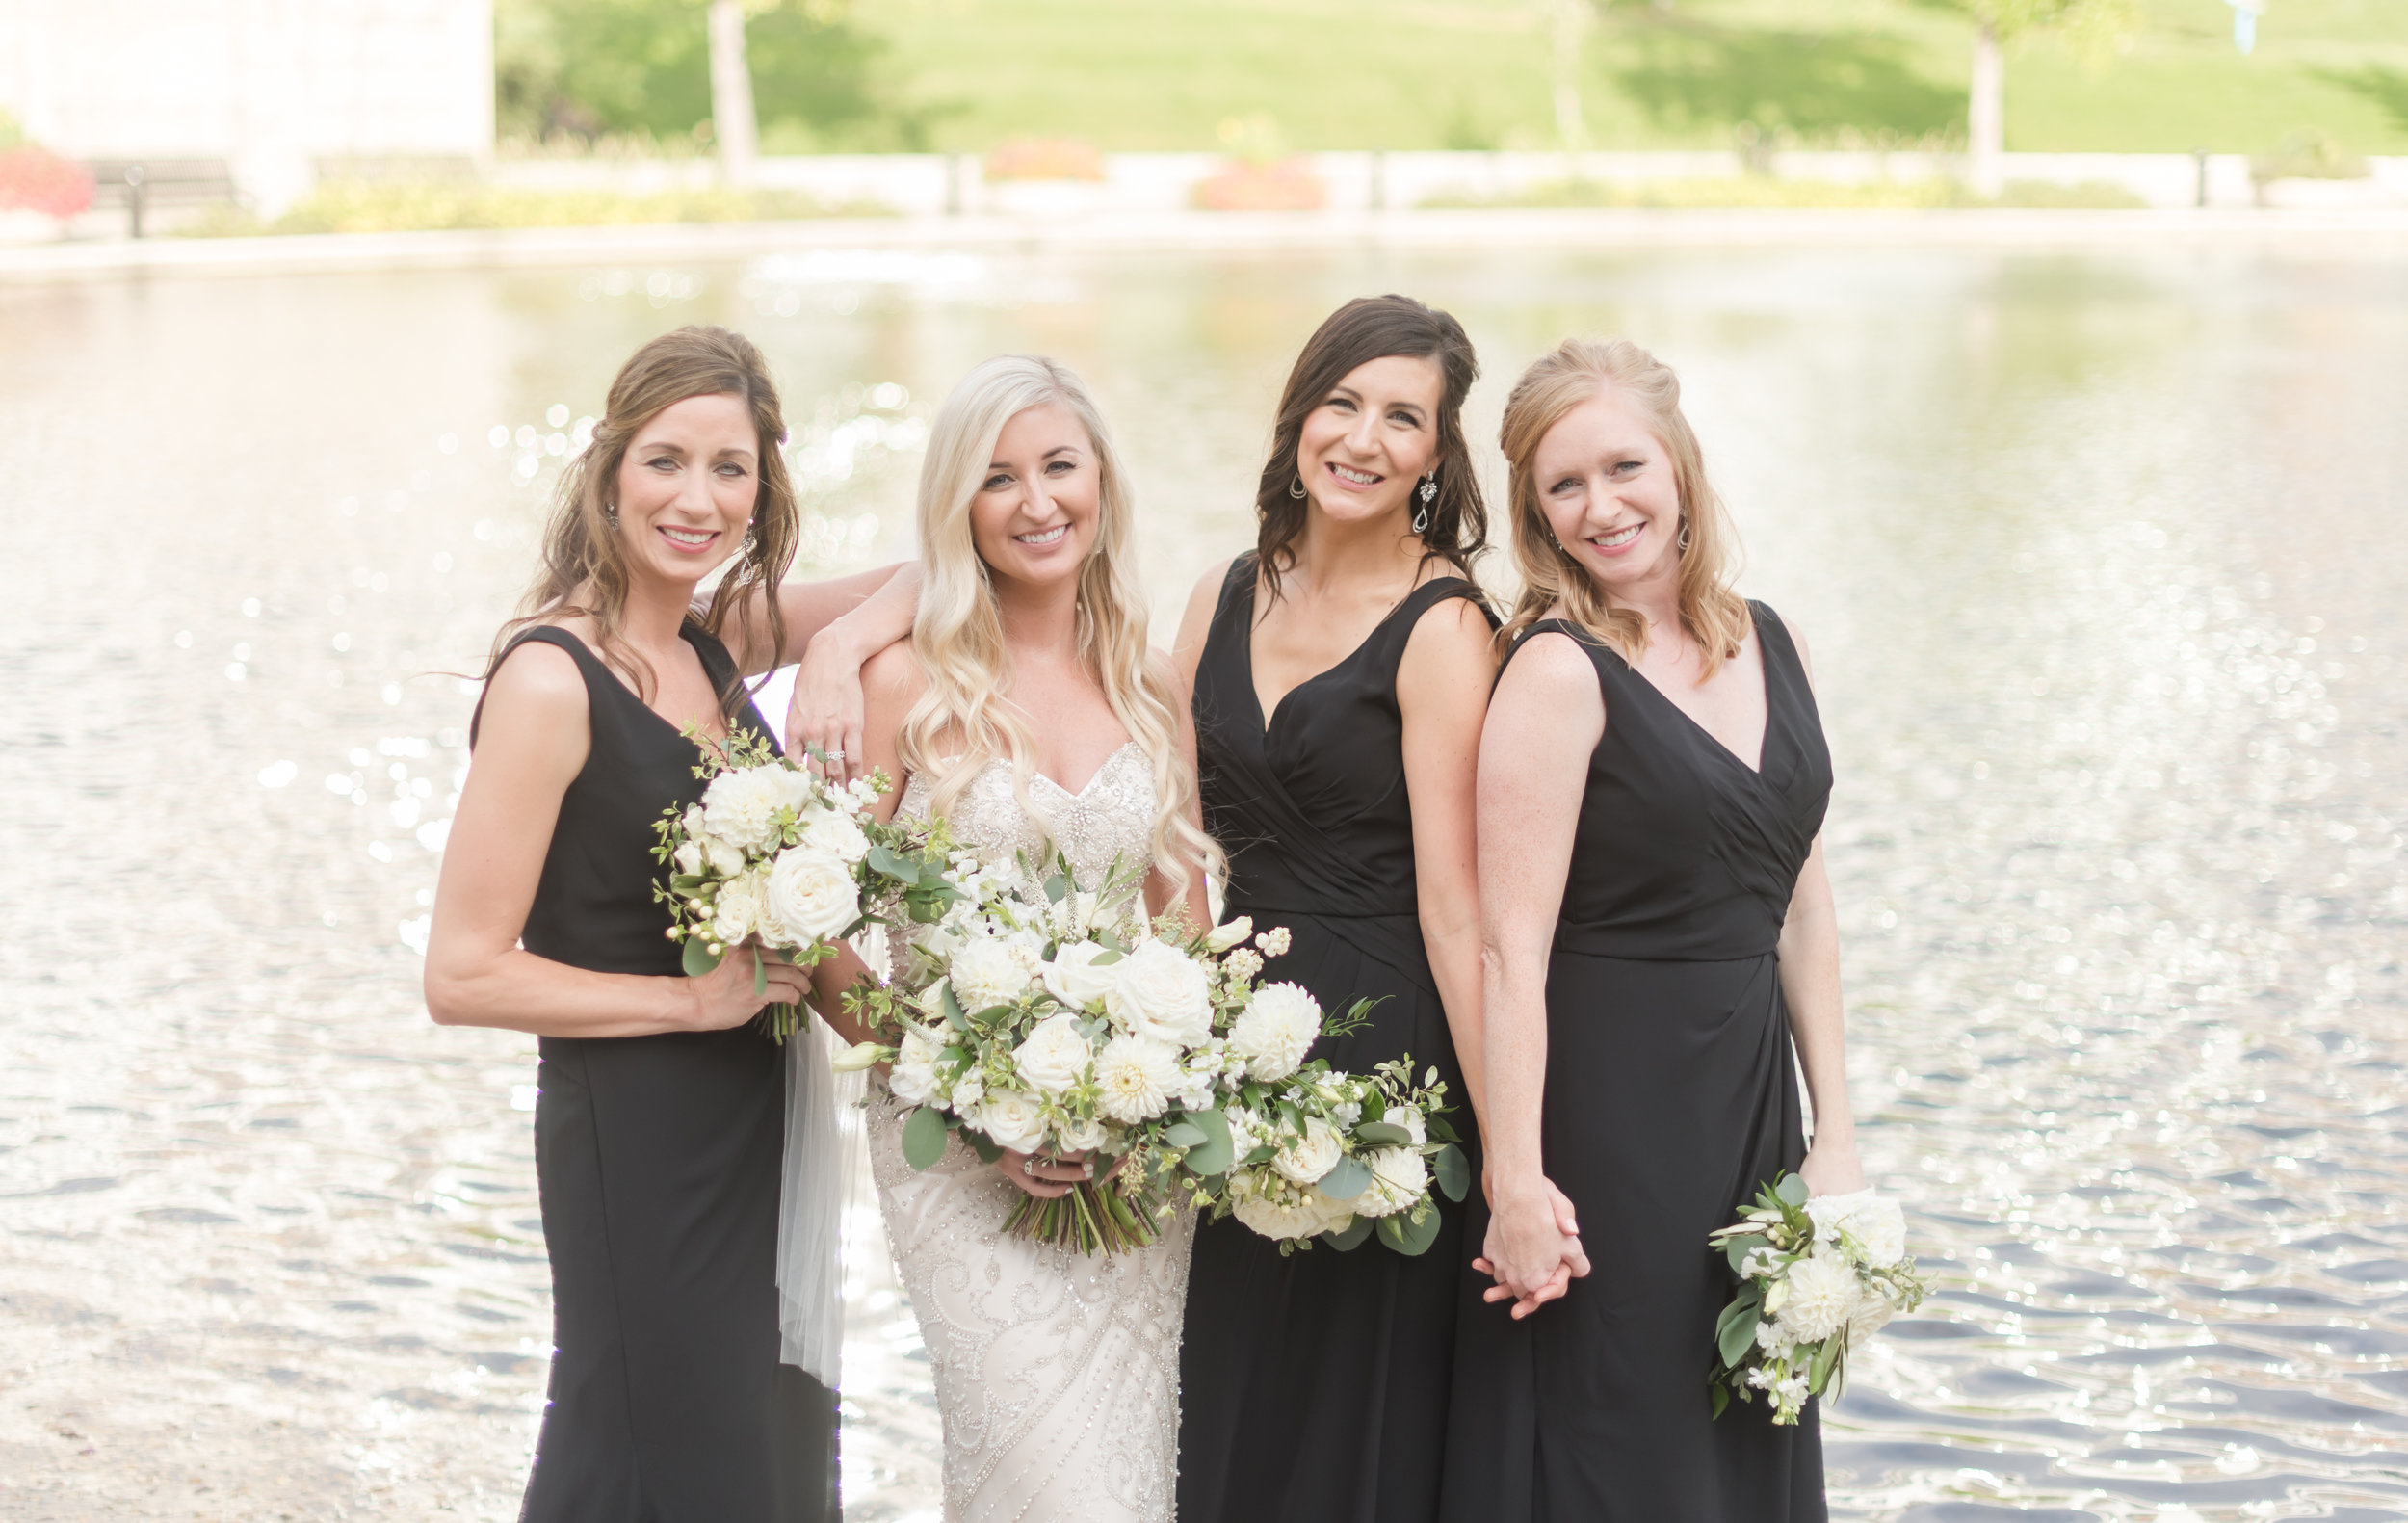 How to Reduce Stress on the Wedding Day